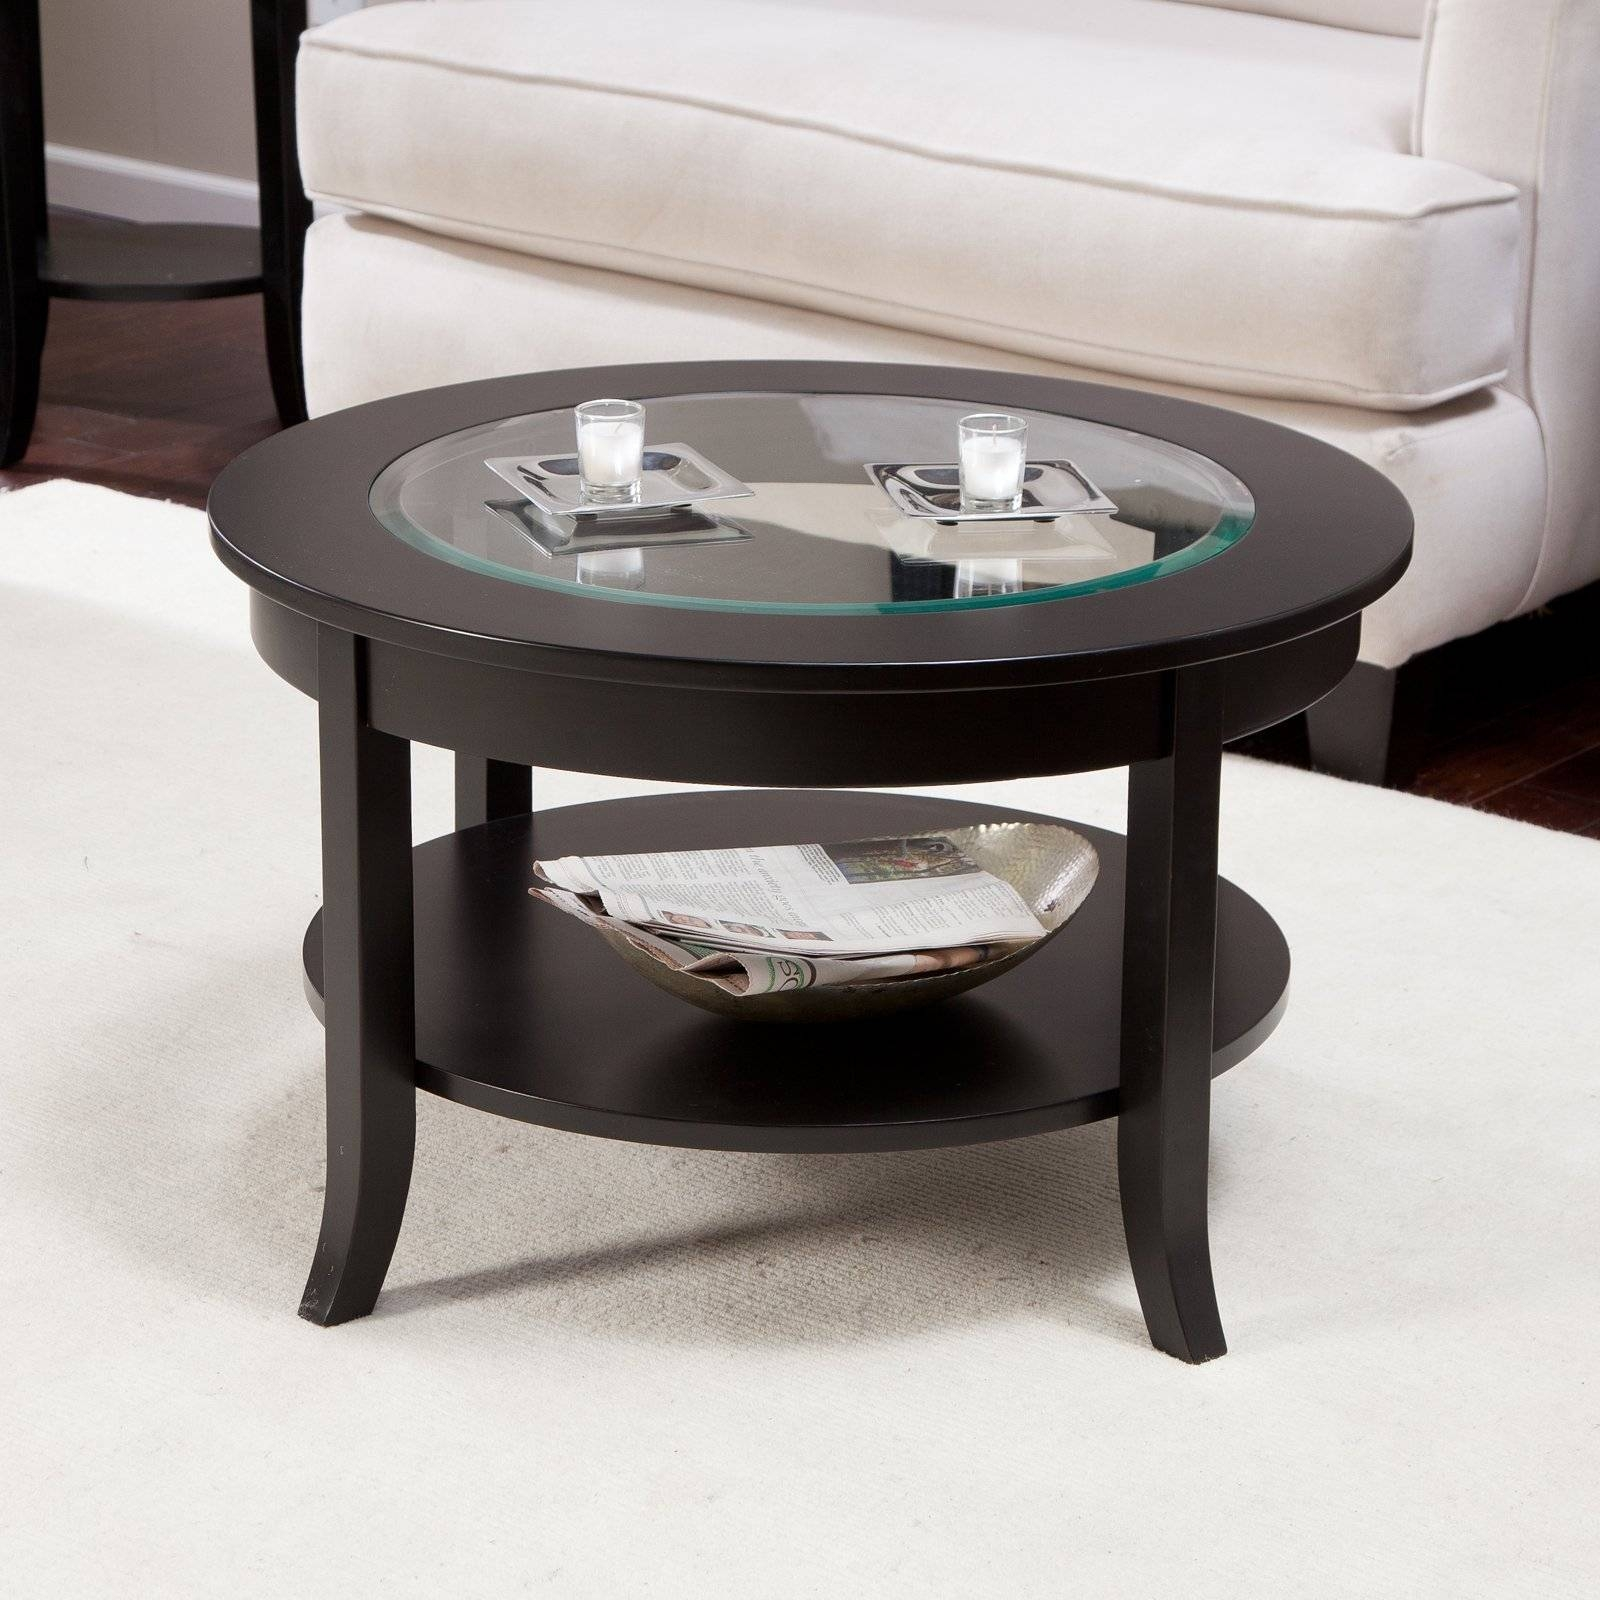 Coffee Table: Amazing Circle Coffee Table Ideas Round Black Coffee pertaining to Black Circle Coffee Tables (Image 10 of 30)